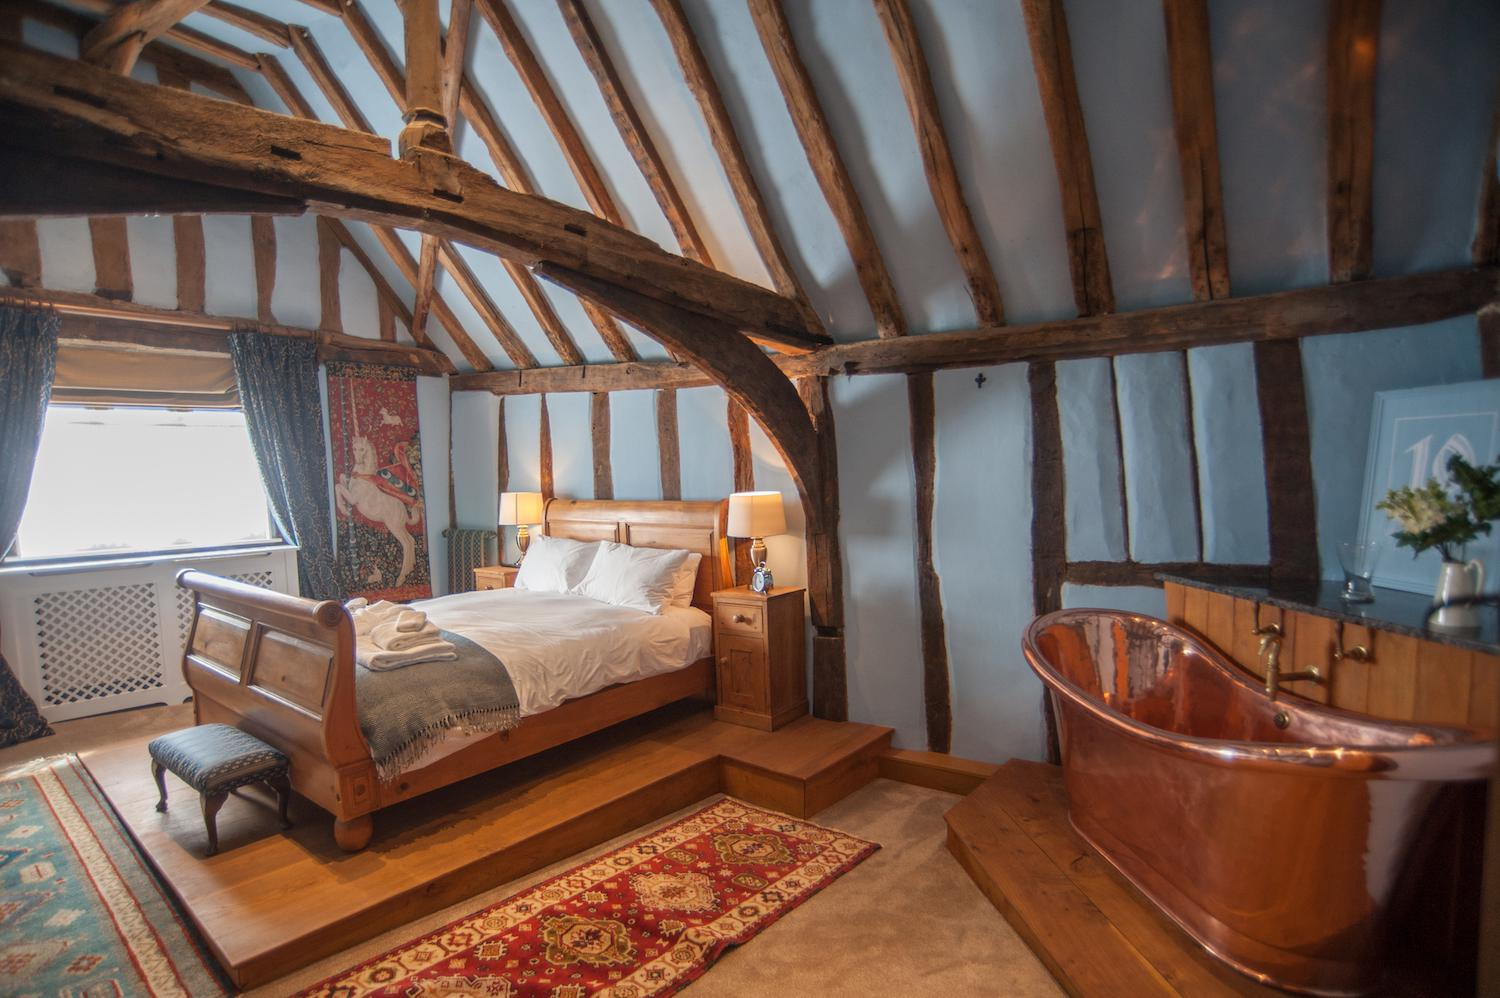 B&Bs in Lavenham holidays at Cool Places